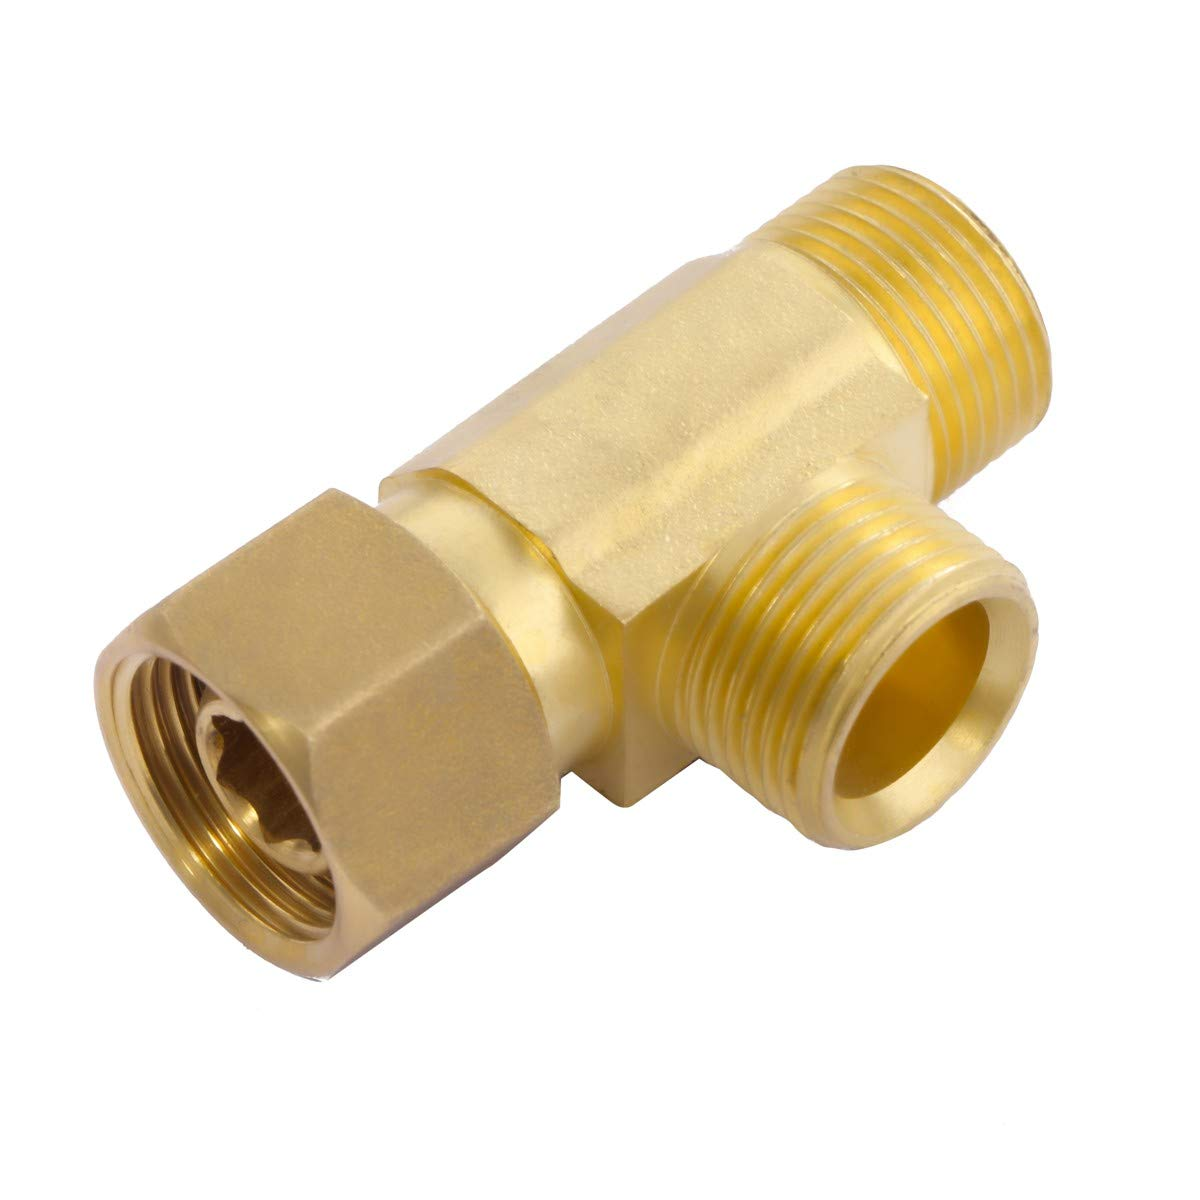 "Litorange Lead Free 2 PCS Brass Angle Stop Add-A-Tee Valve 3/8"" Compression Inlet by 3/8"" Compression Outlet by 3/8 Inch Compression Outlet Easy Connect Tee"